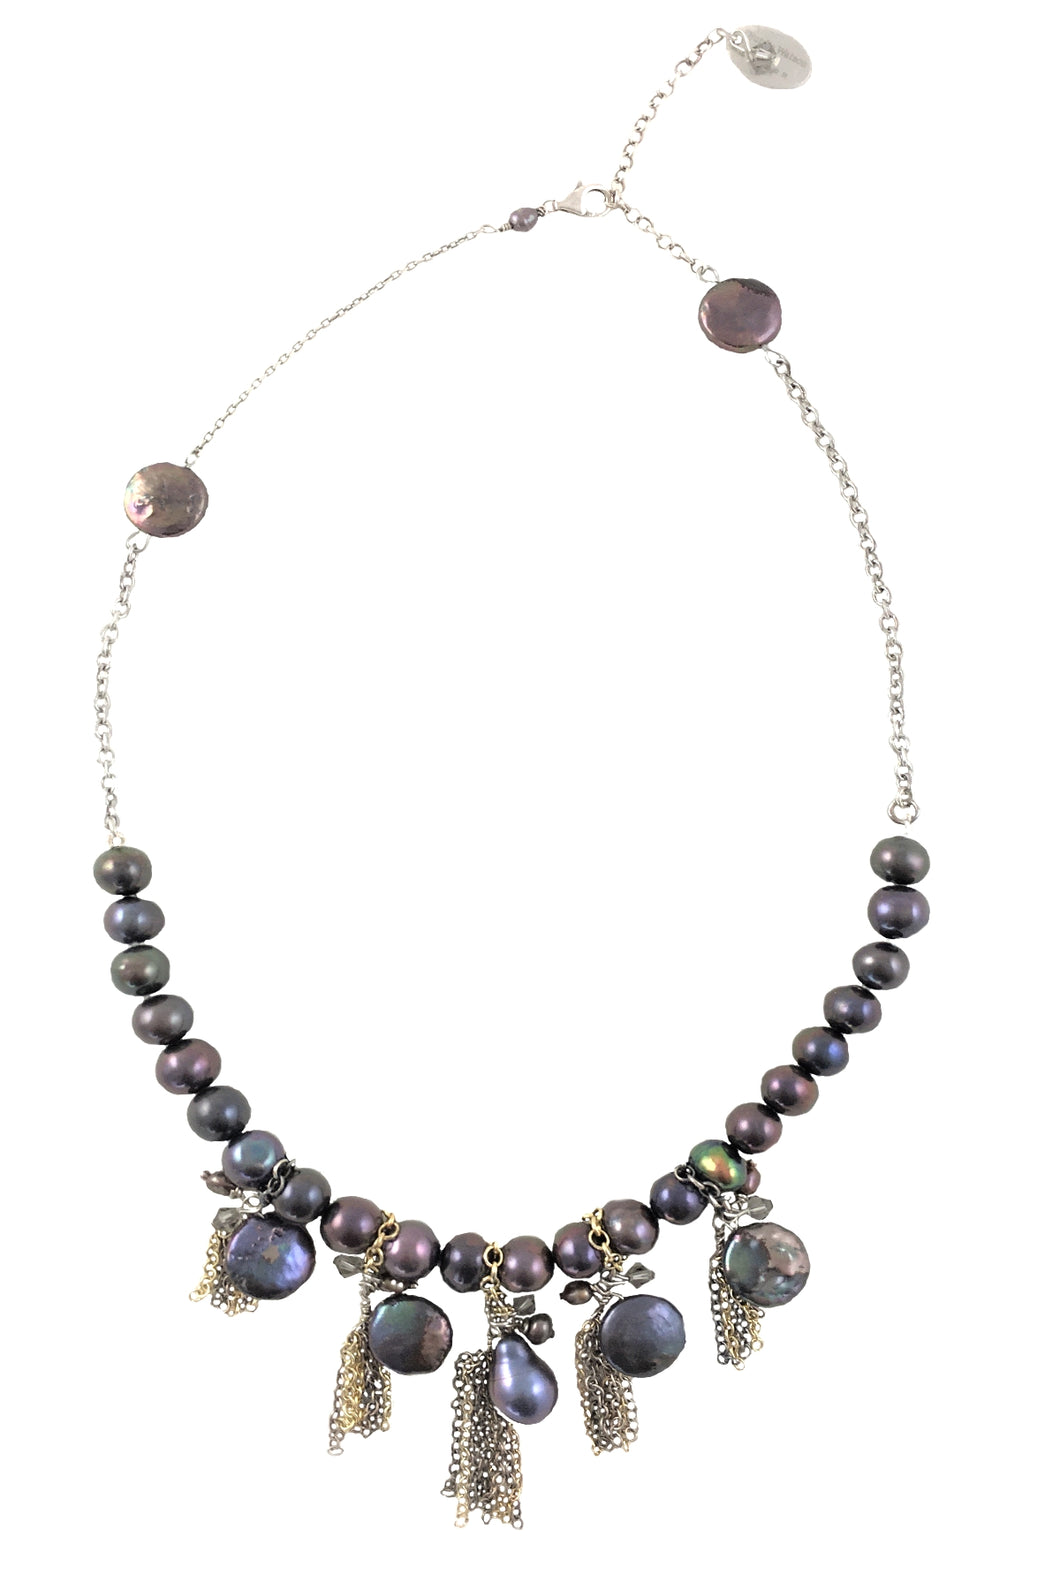 Barcelona Freshwater Pearls Crystal Necklace